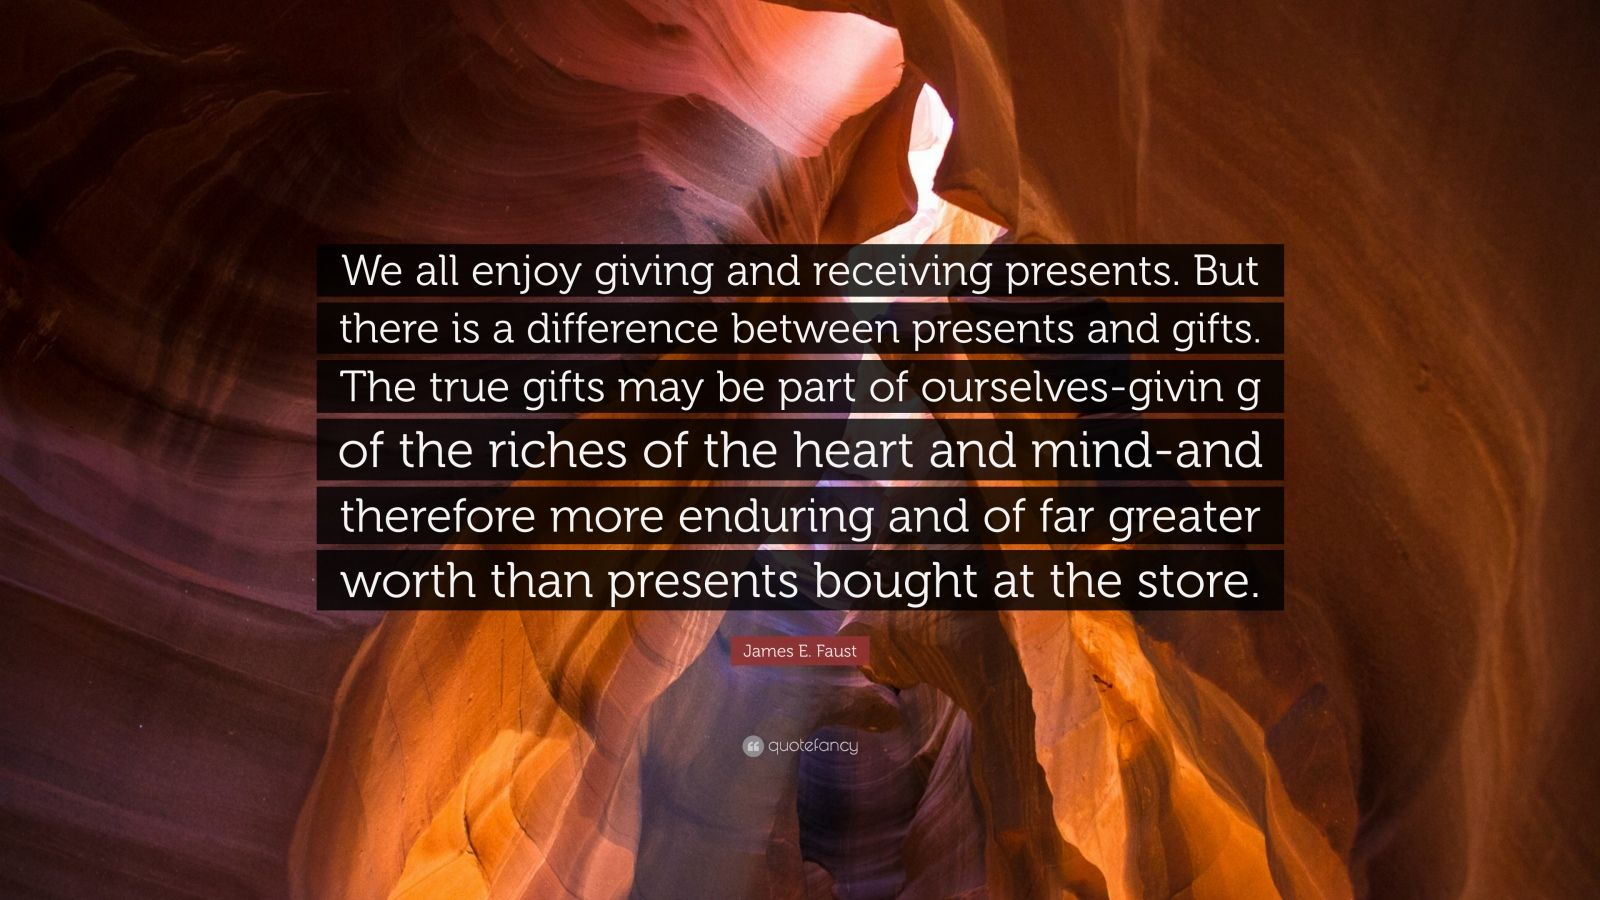 """James E. Faust Quote: """"We all enjoy giving and receiving presents. But there is a difference between presents and gifts. The true gifts may be part of ourselves-givin g of the riches of the heart and mind-and therefore more enduring and of far greater worth than presents bought at the store."""""""